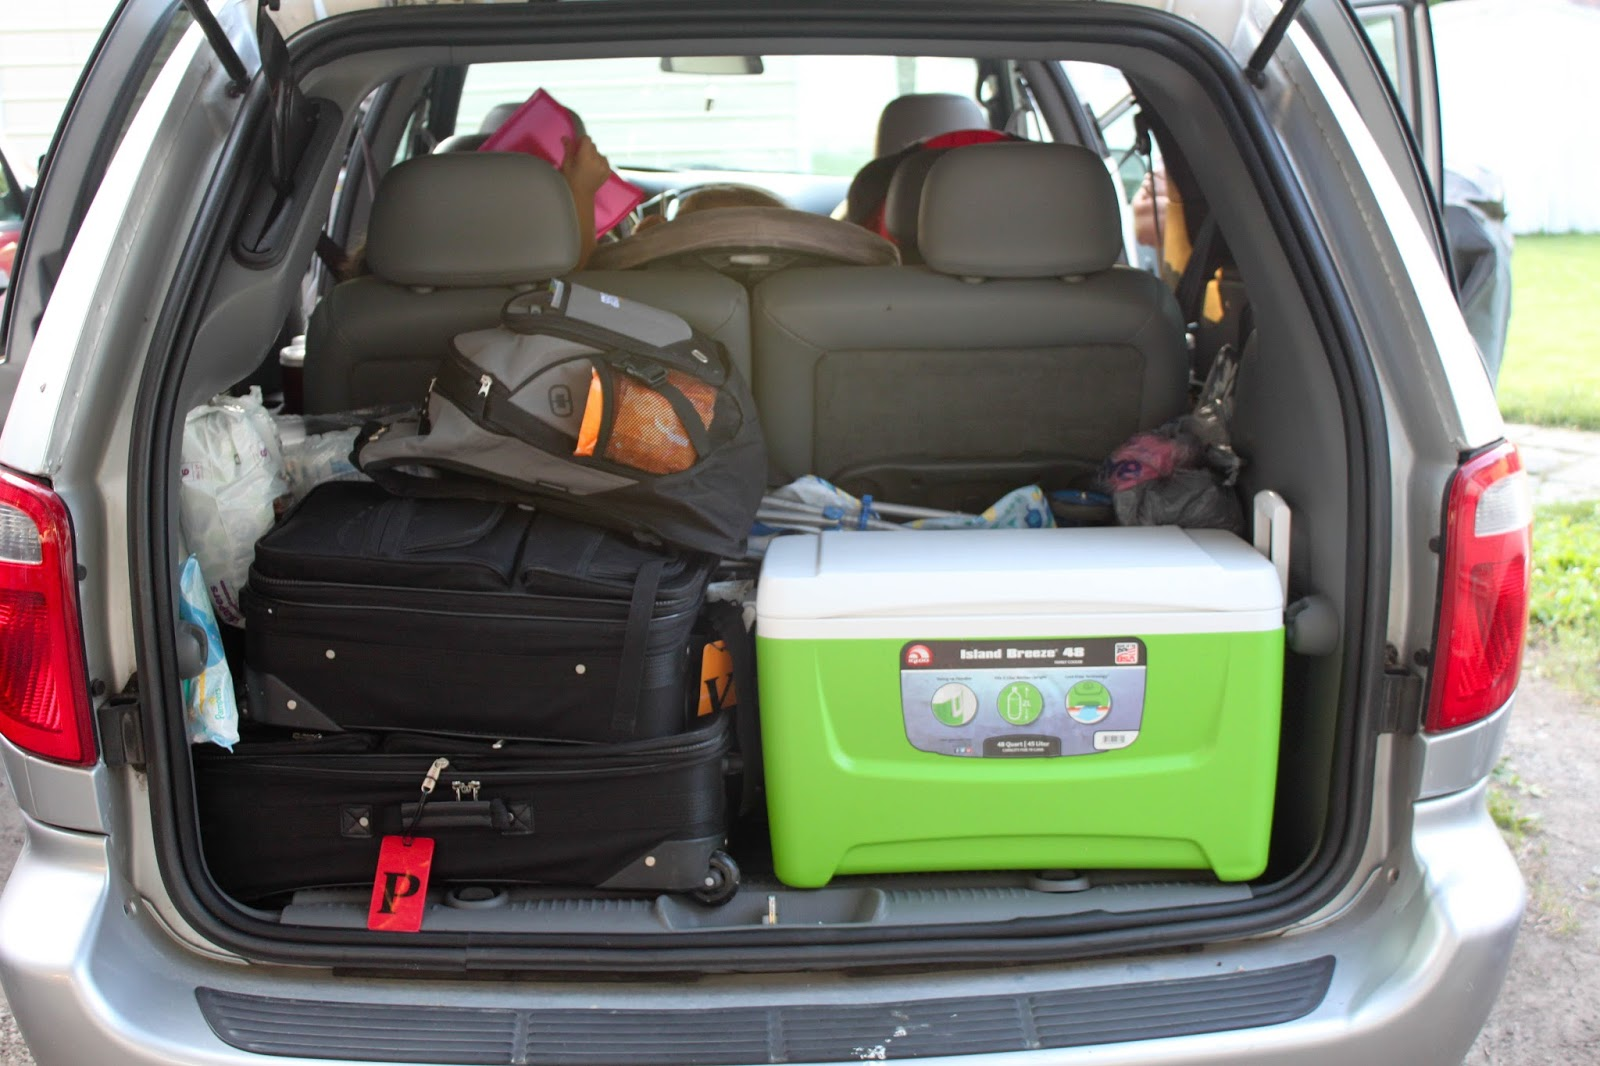 the minivan voorsts.: large family road trip with small kids: ideas